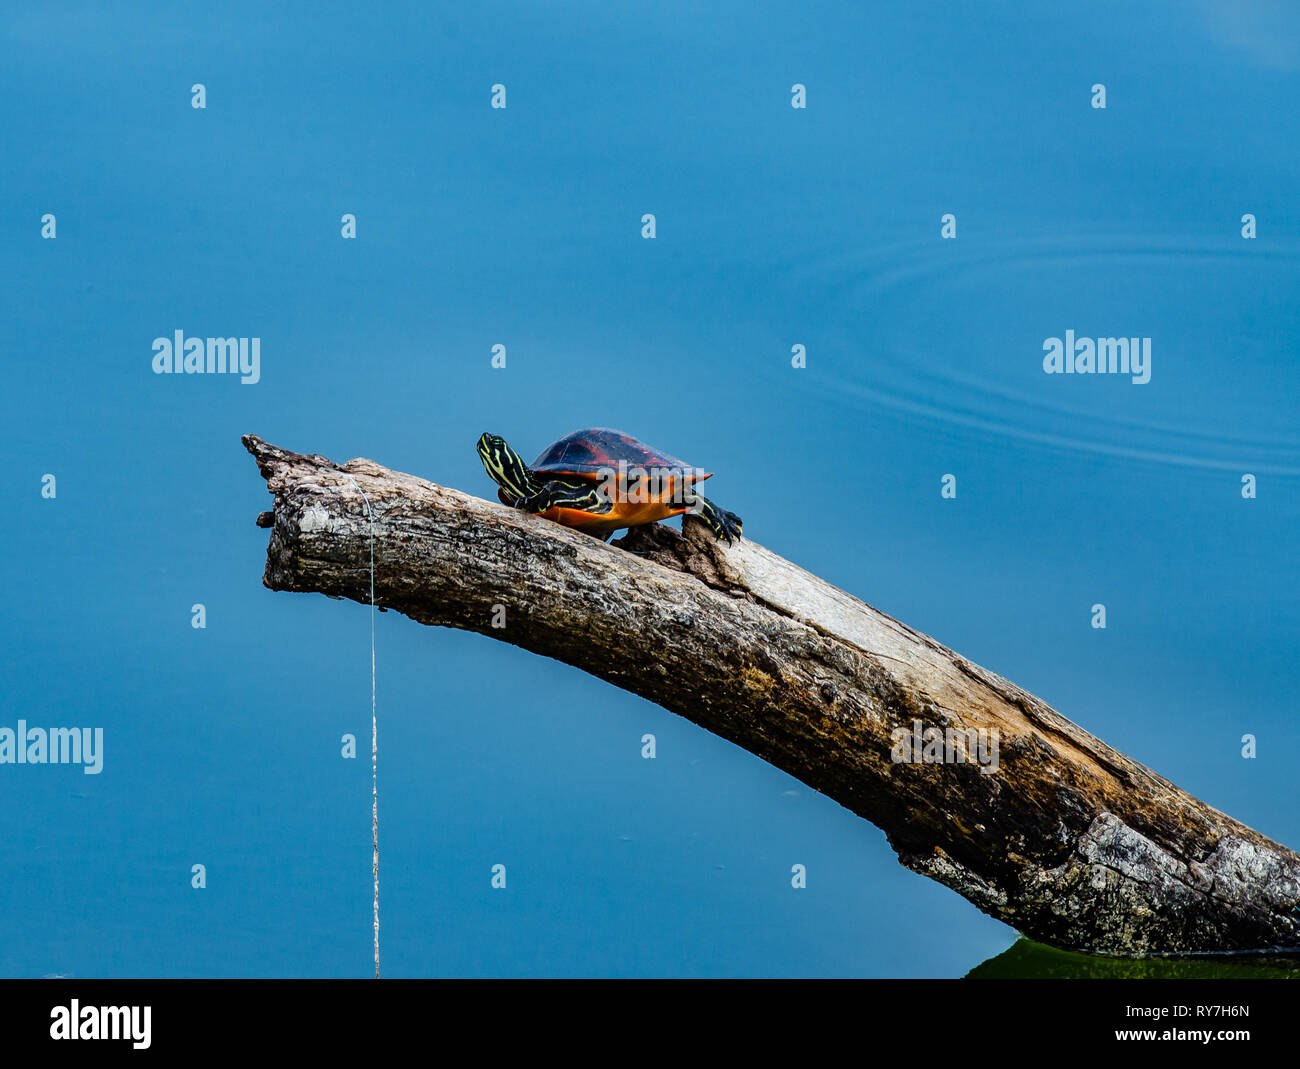 Portrait of a Florida red bellied cooter sunning on a dead tree over a wetland pond with fishing line caught on the branch. Stock Photo